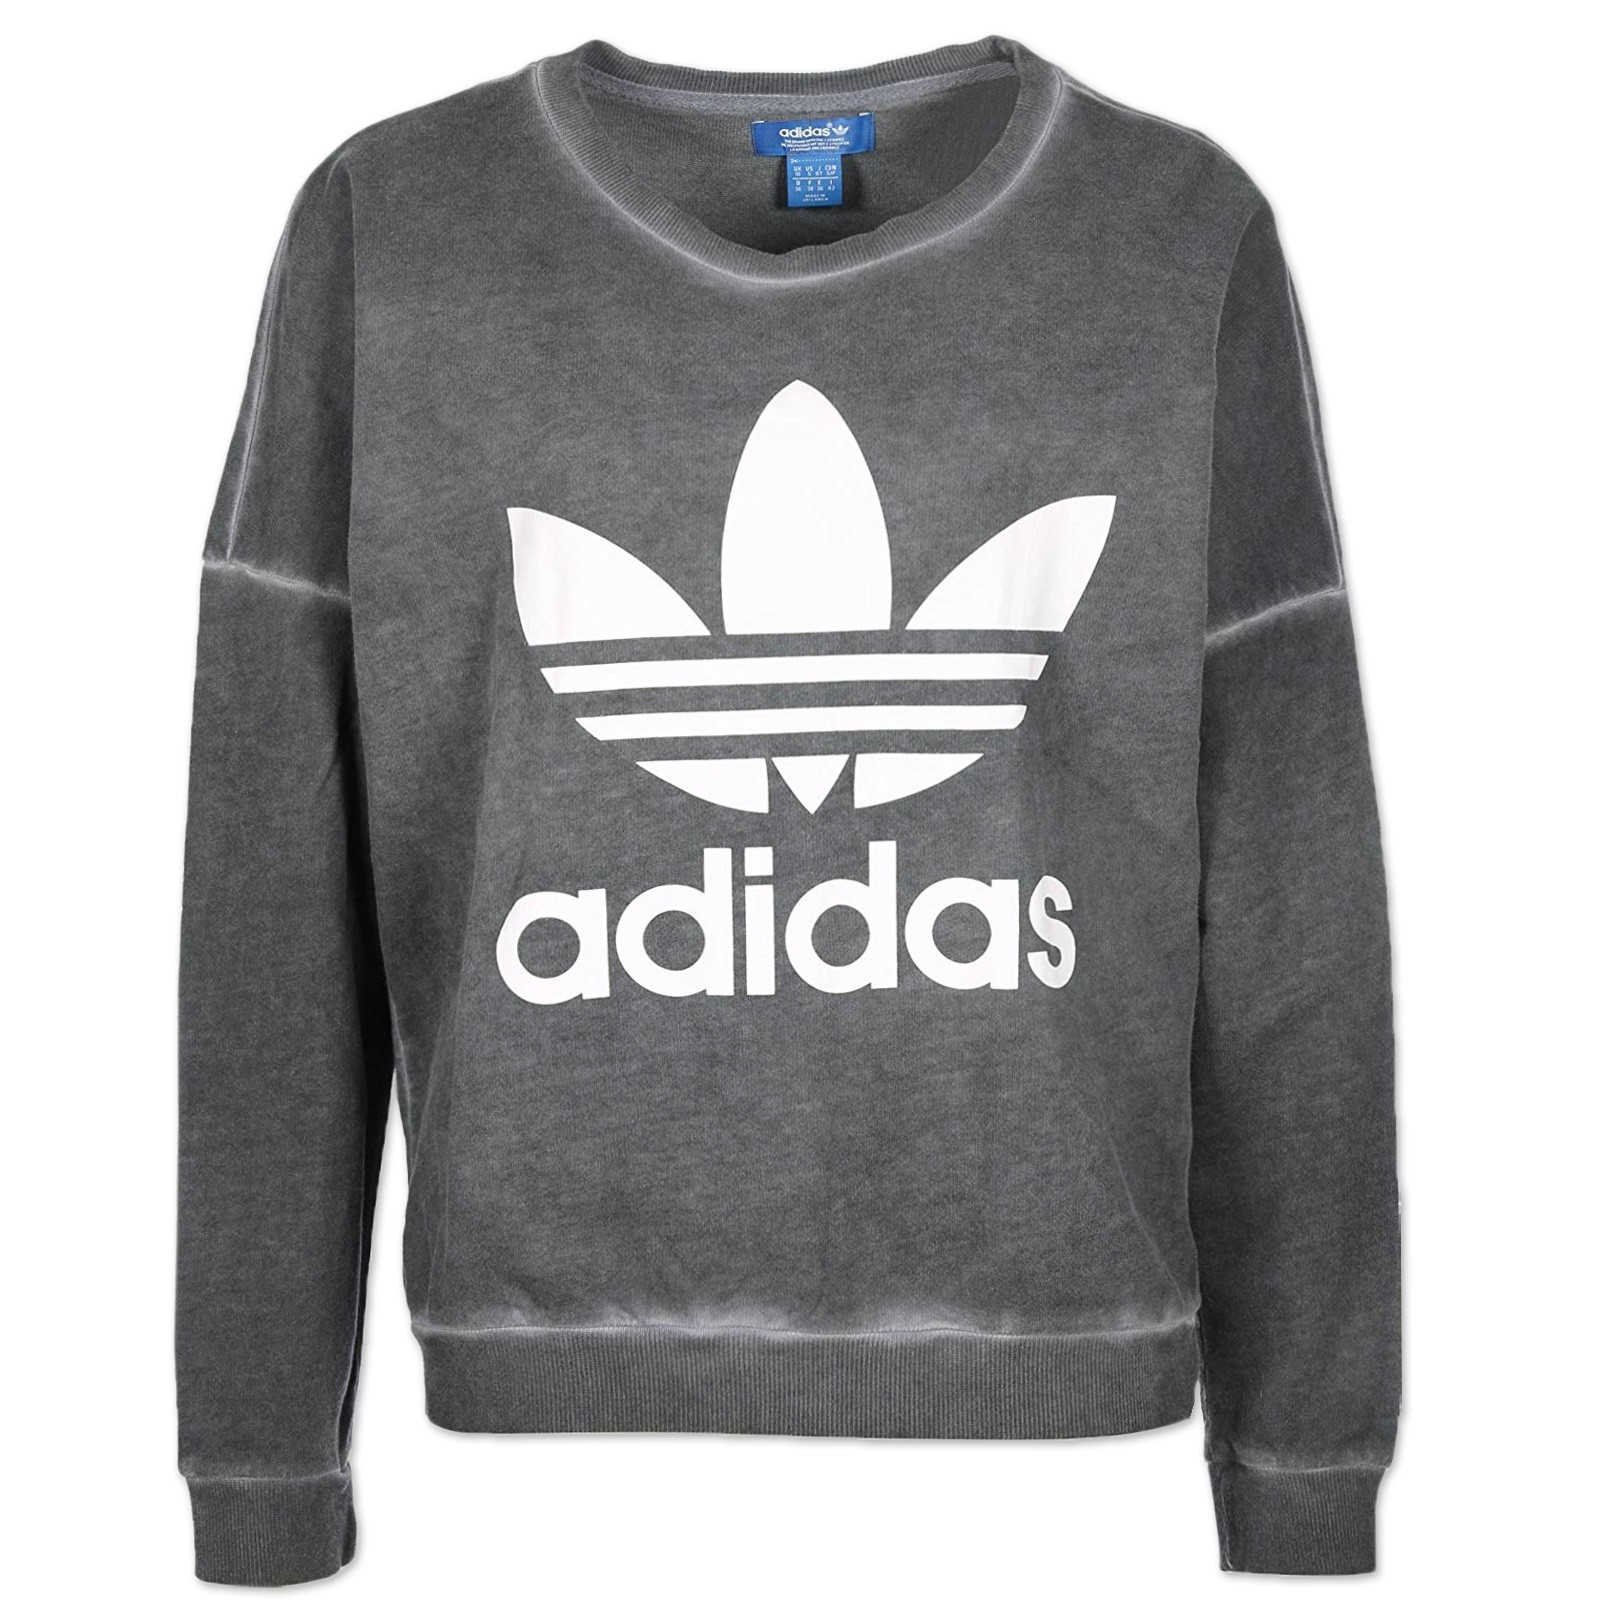 adidas originals sweatshirt damen grau